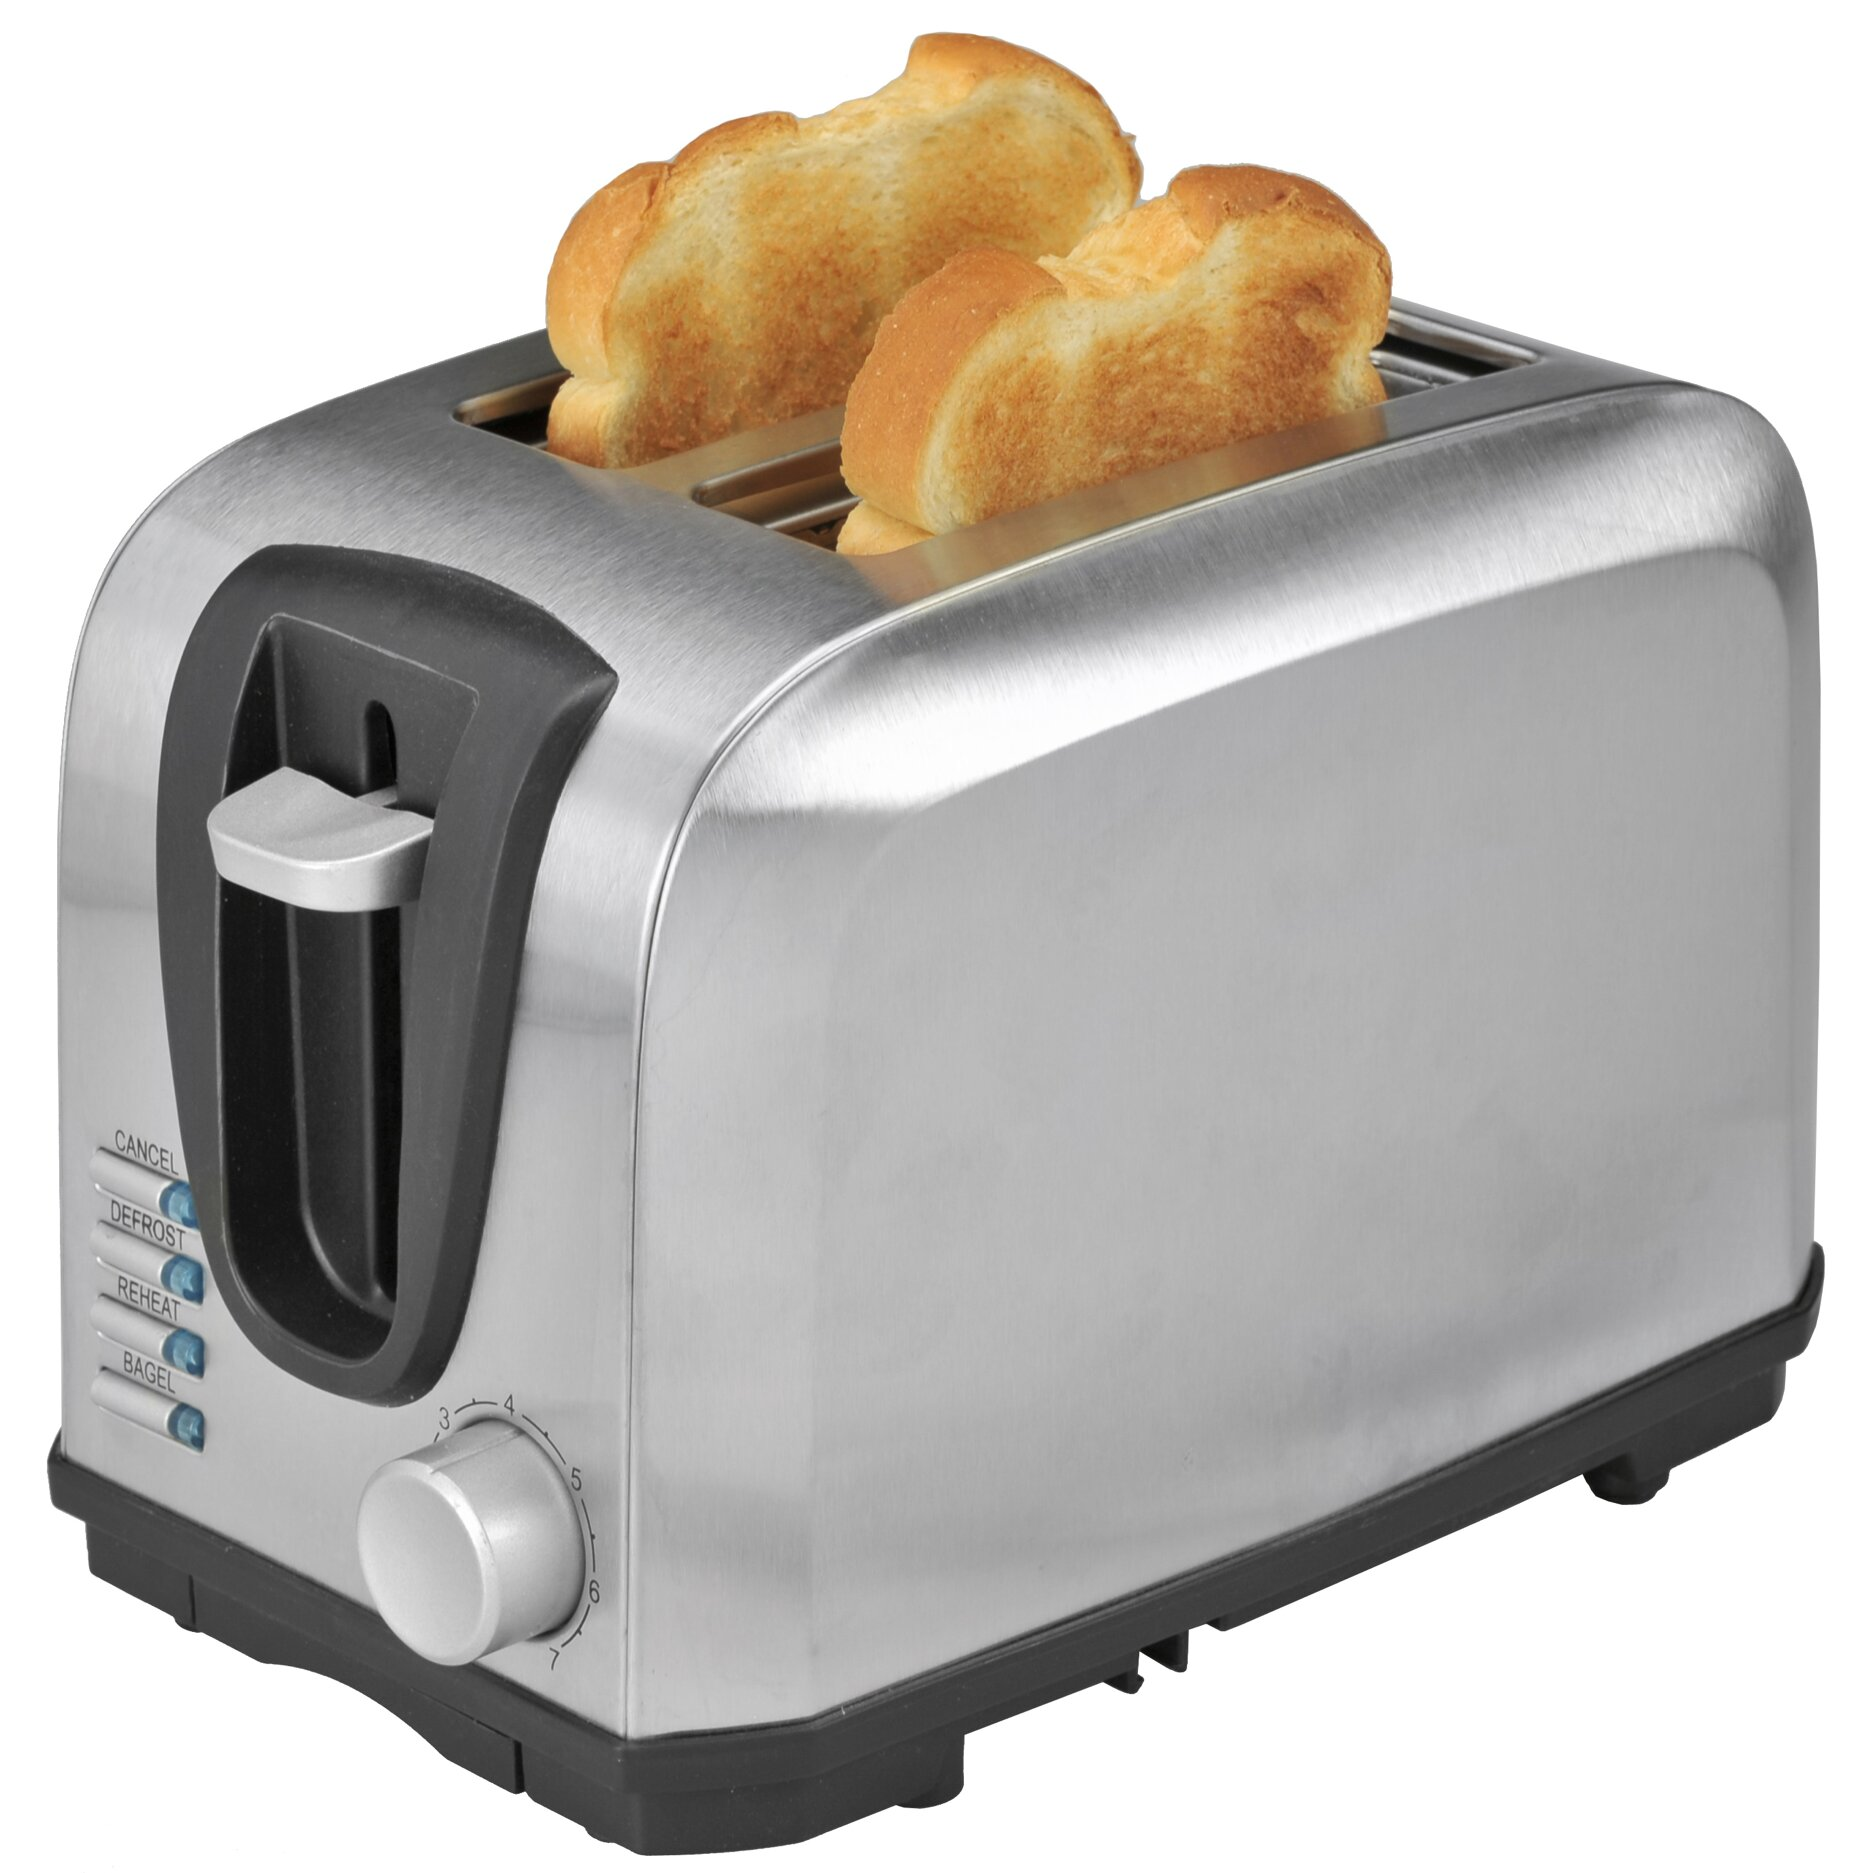 Kalorik 2 Slice Toaster Amp Reviews Wayfair